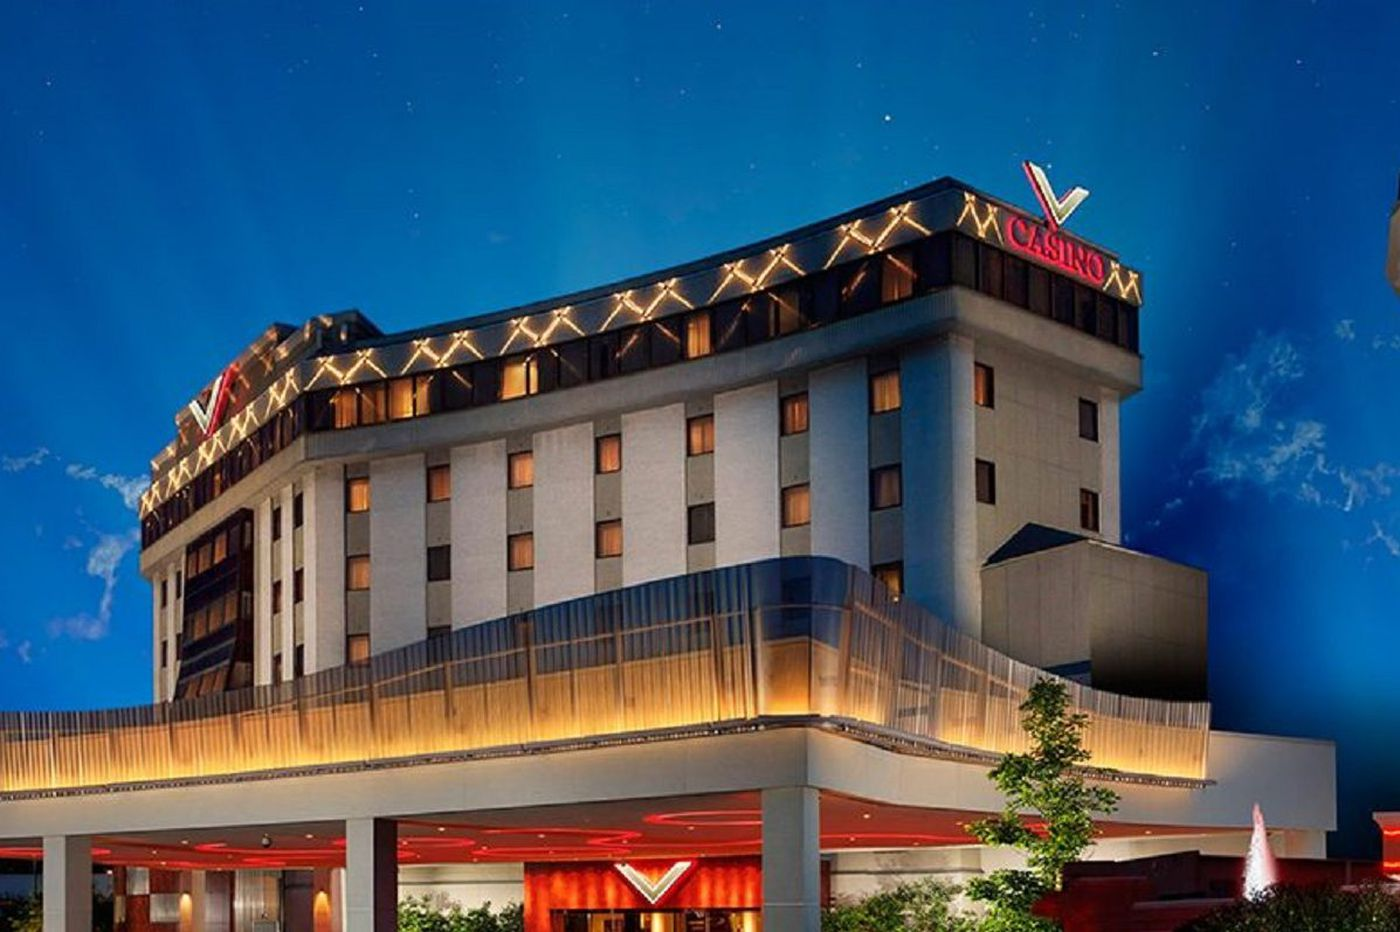 Hollywood Casino is first to launch legal sports betting in Pa.